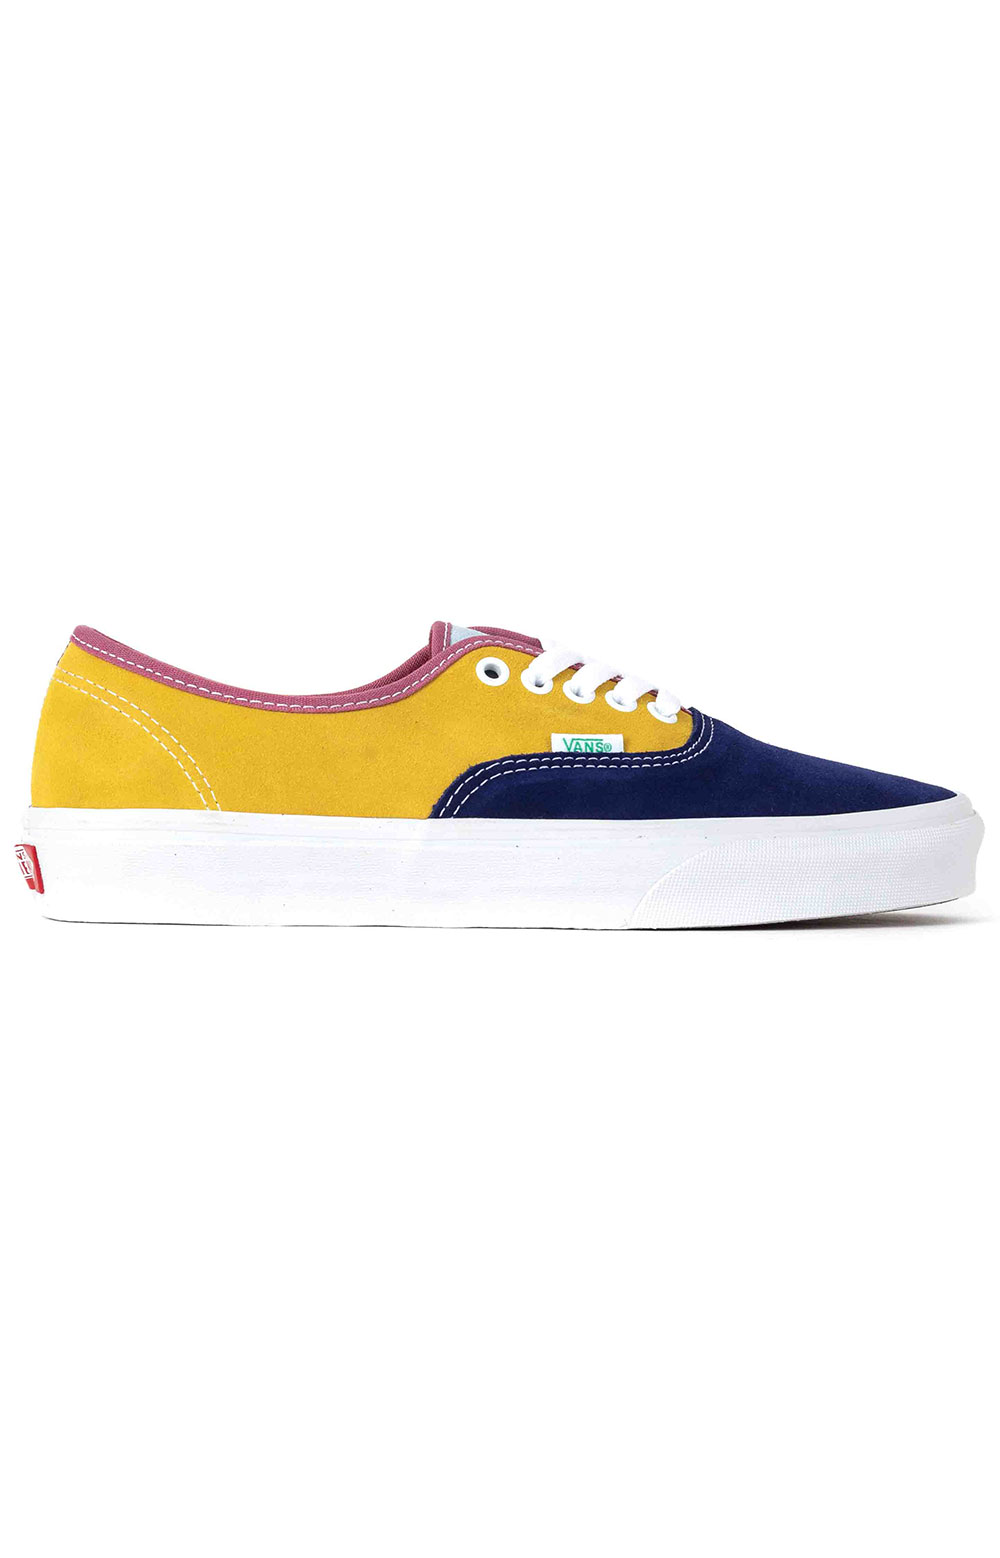 (Z5IWNY) Sunshine Authentic Shoes - Multi/True White